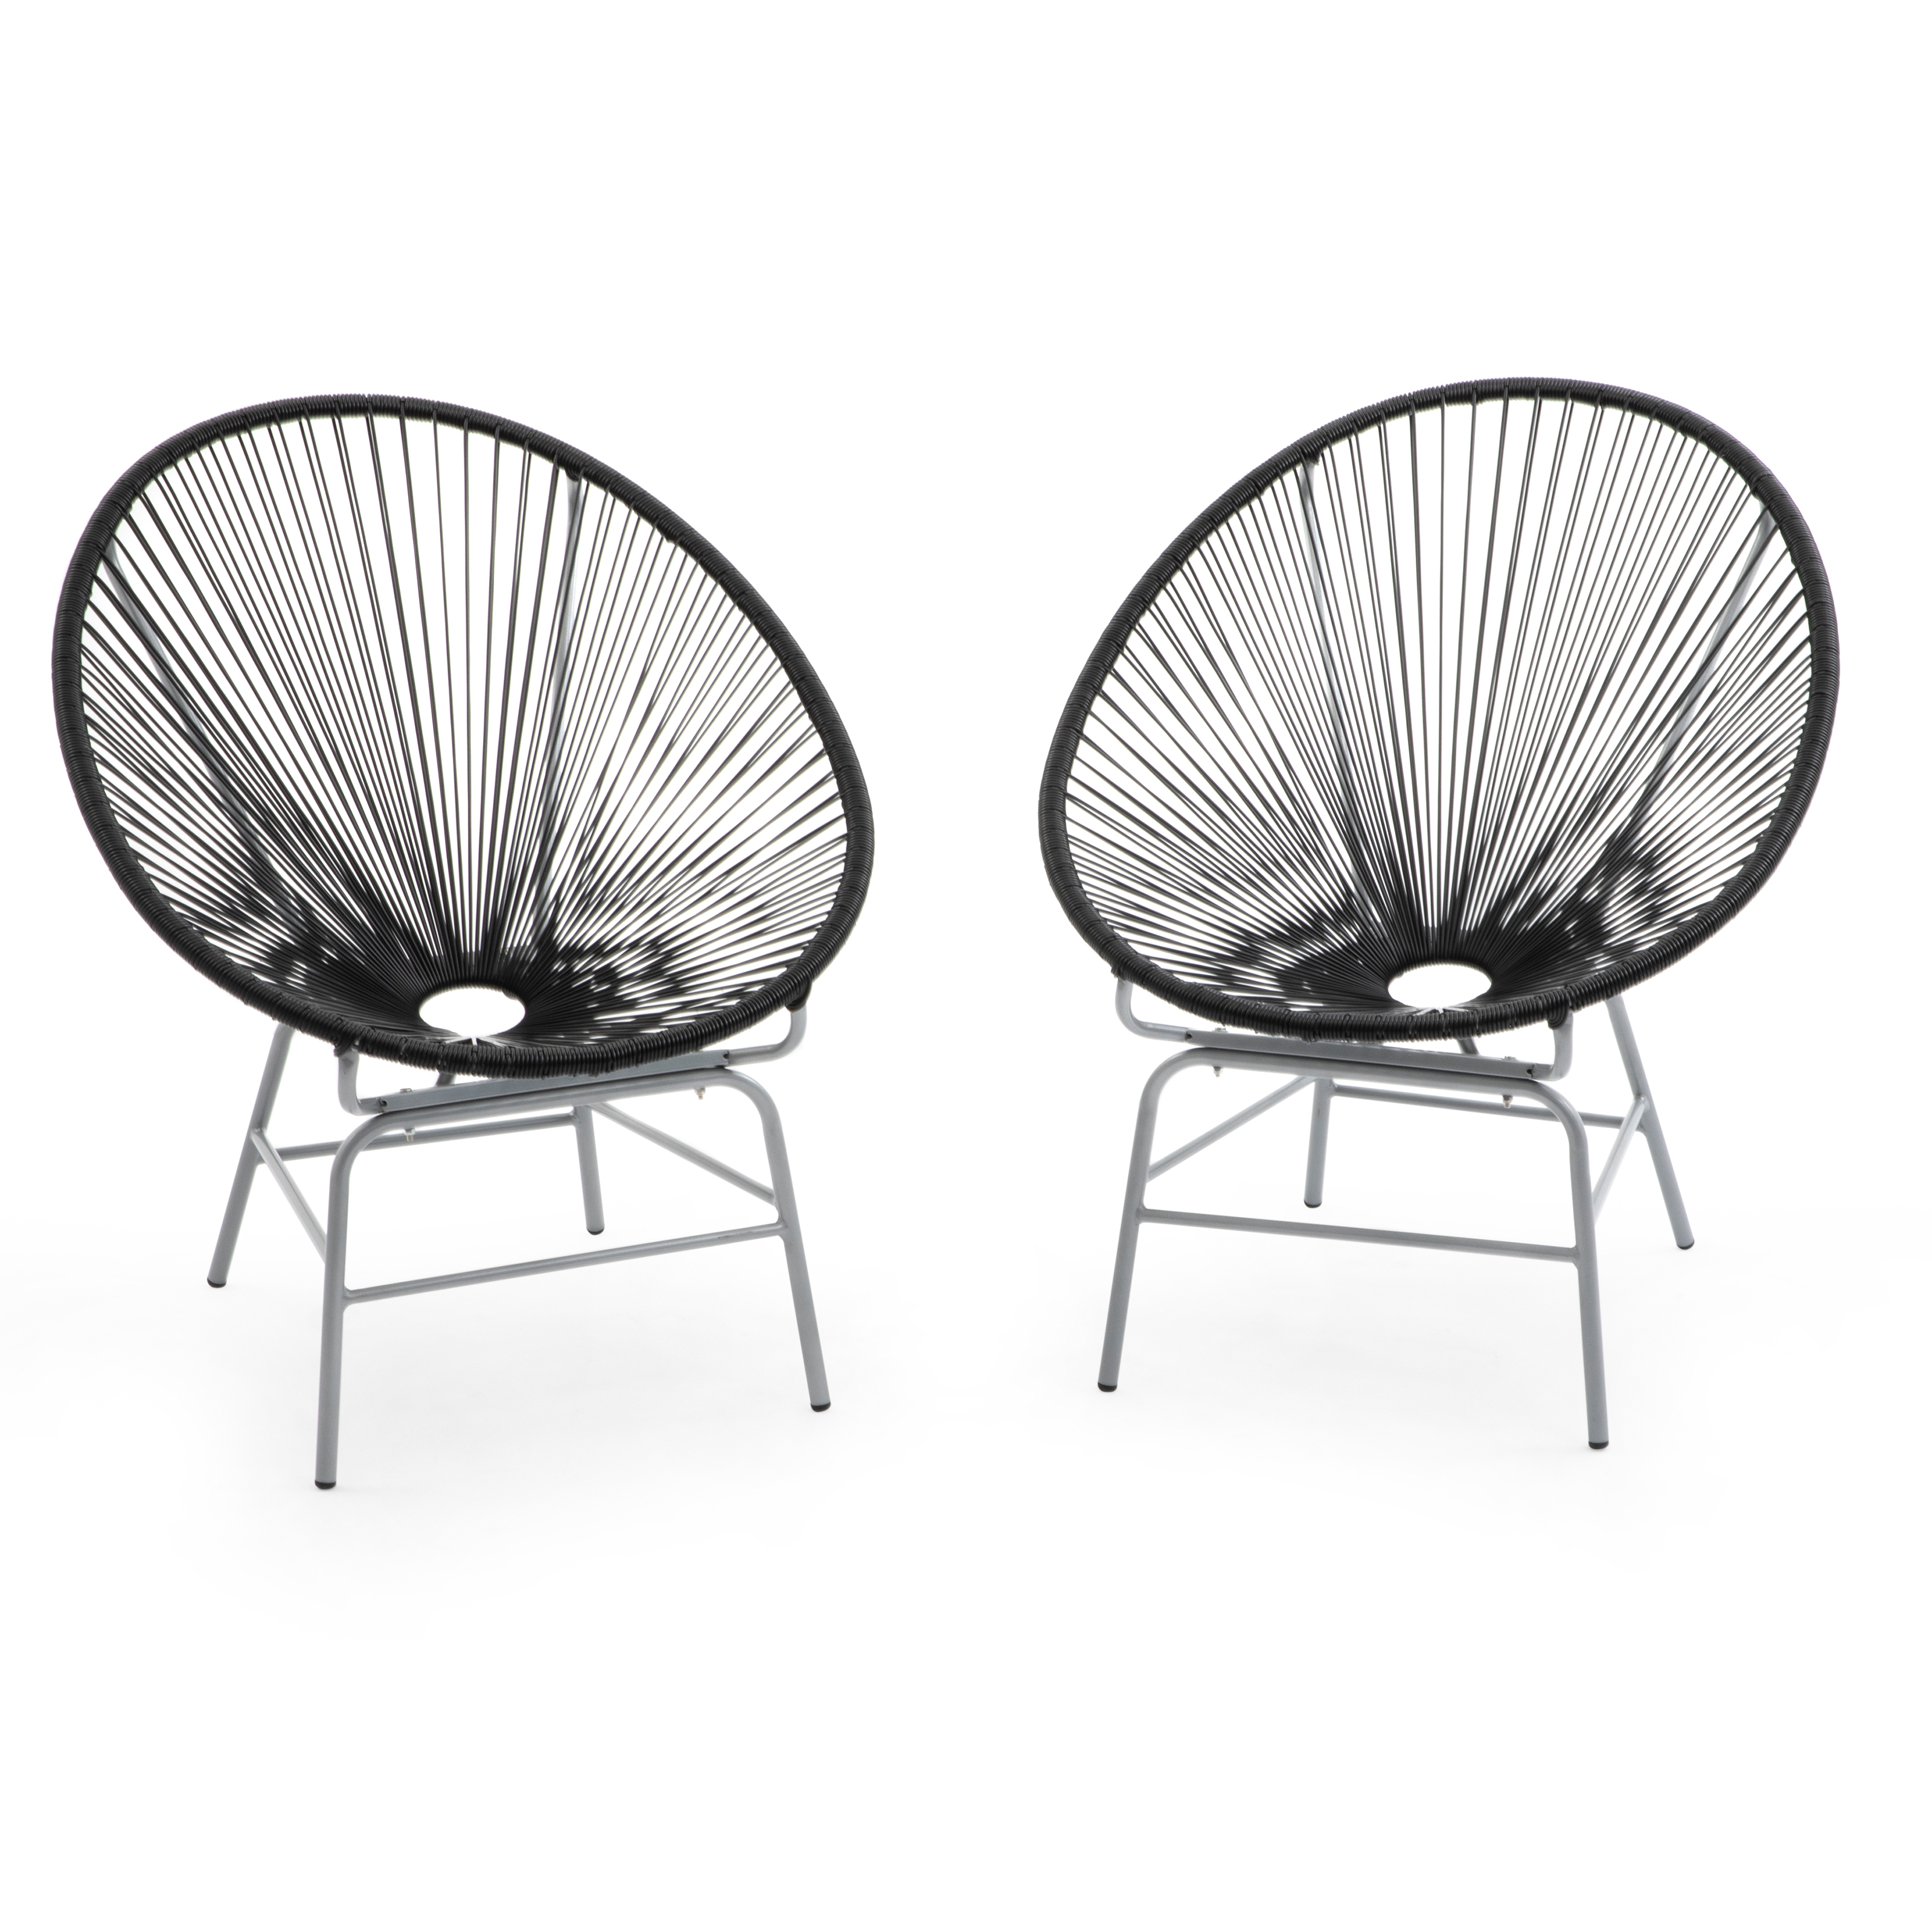 Coral Coast Haley Acapulco All Weather Wicker Sun Chair Set of 2